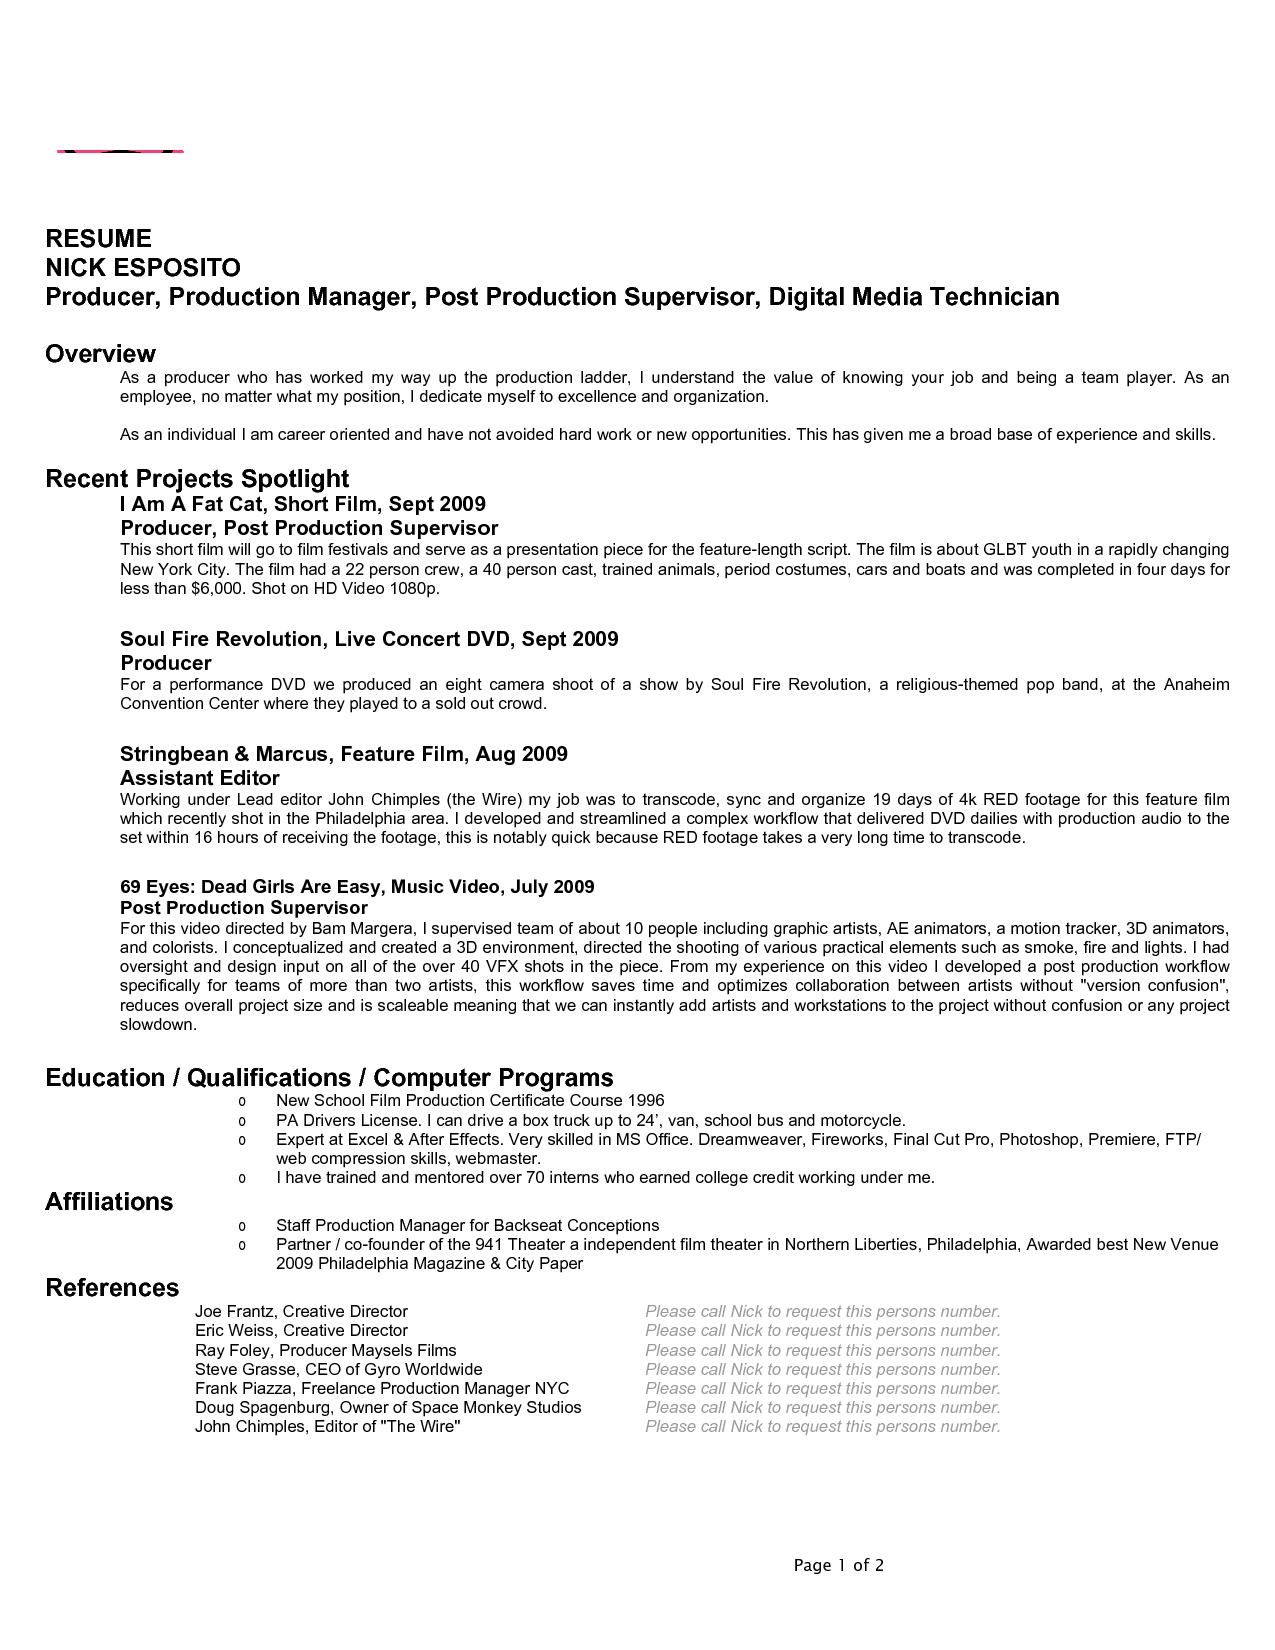 Resume Templates Tamu Impressive Film Producer Resume  Google Search  Bragging Rights  Resumes